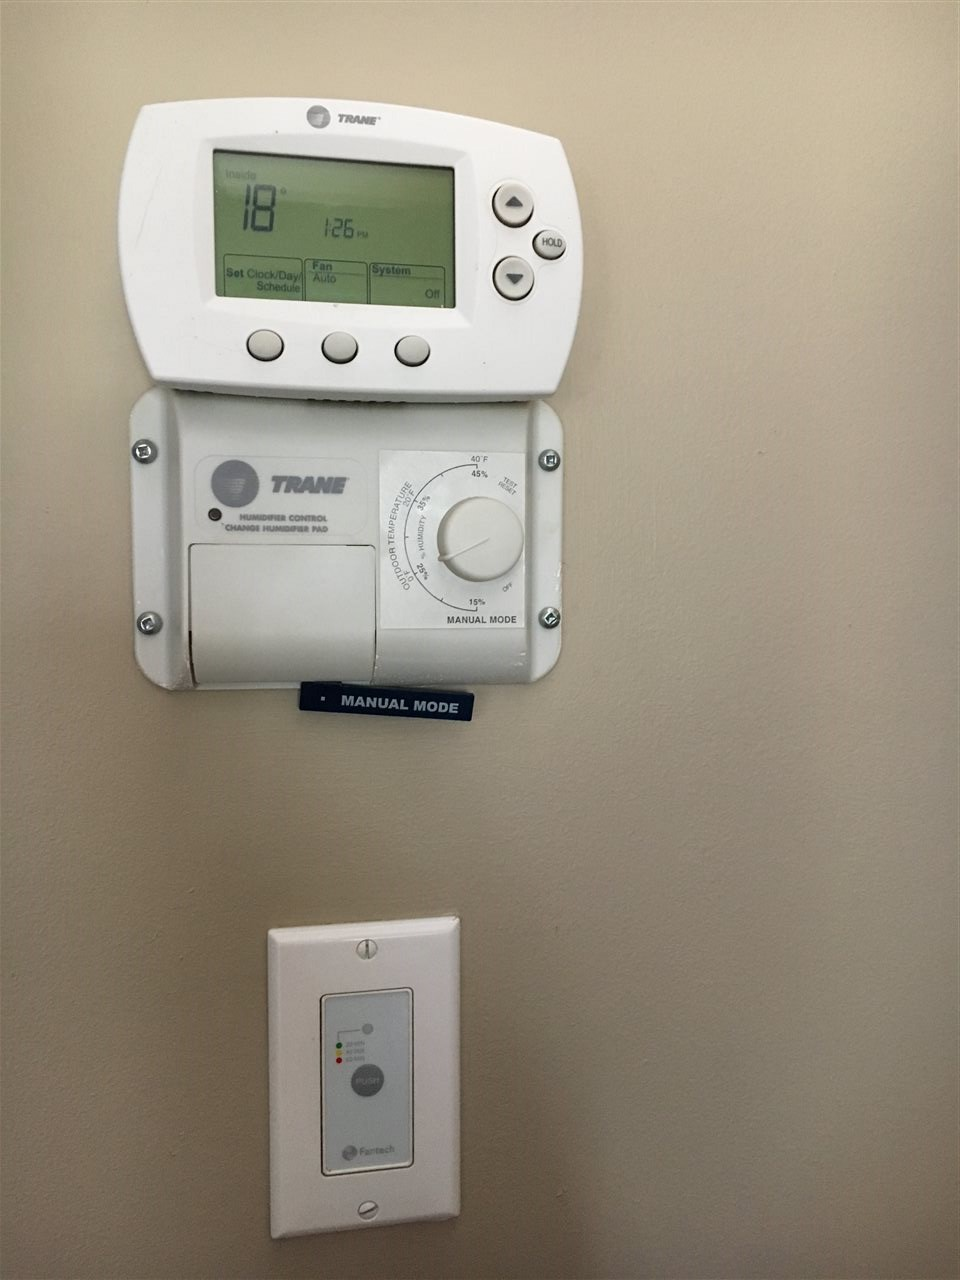 Close up Photo of Programable Thermostats for the Upgraded Energy Efficient Trane Heating System.